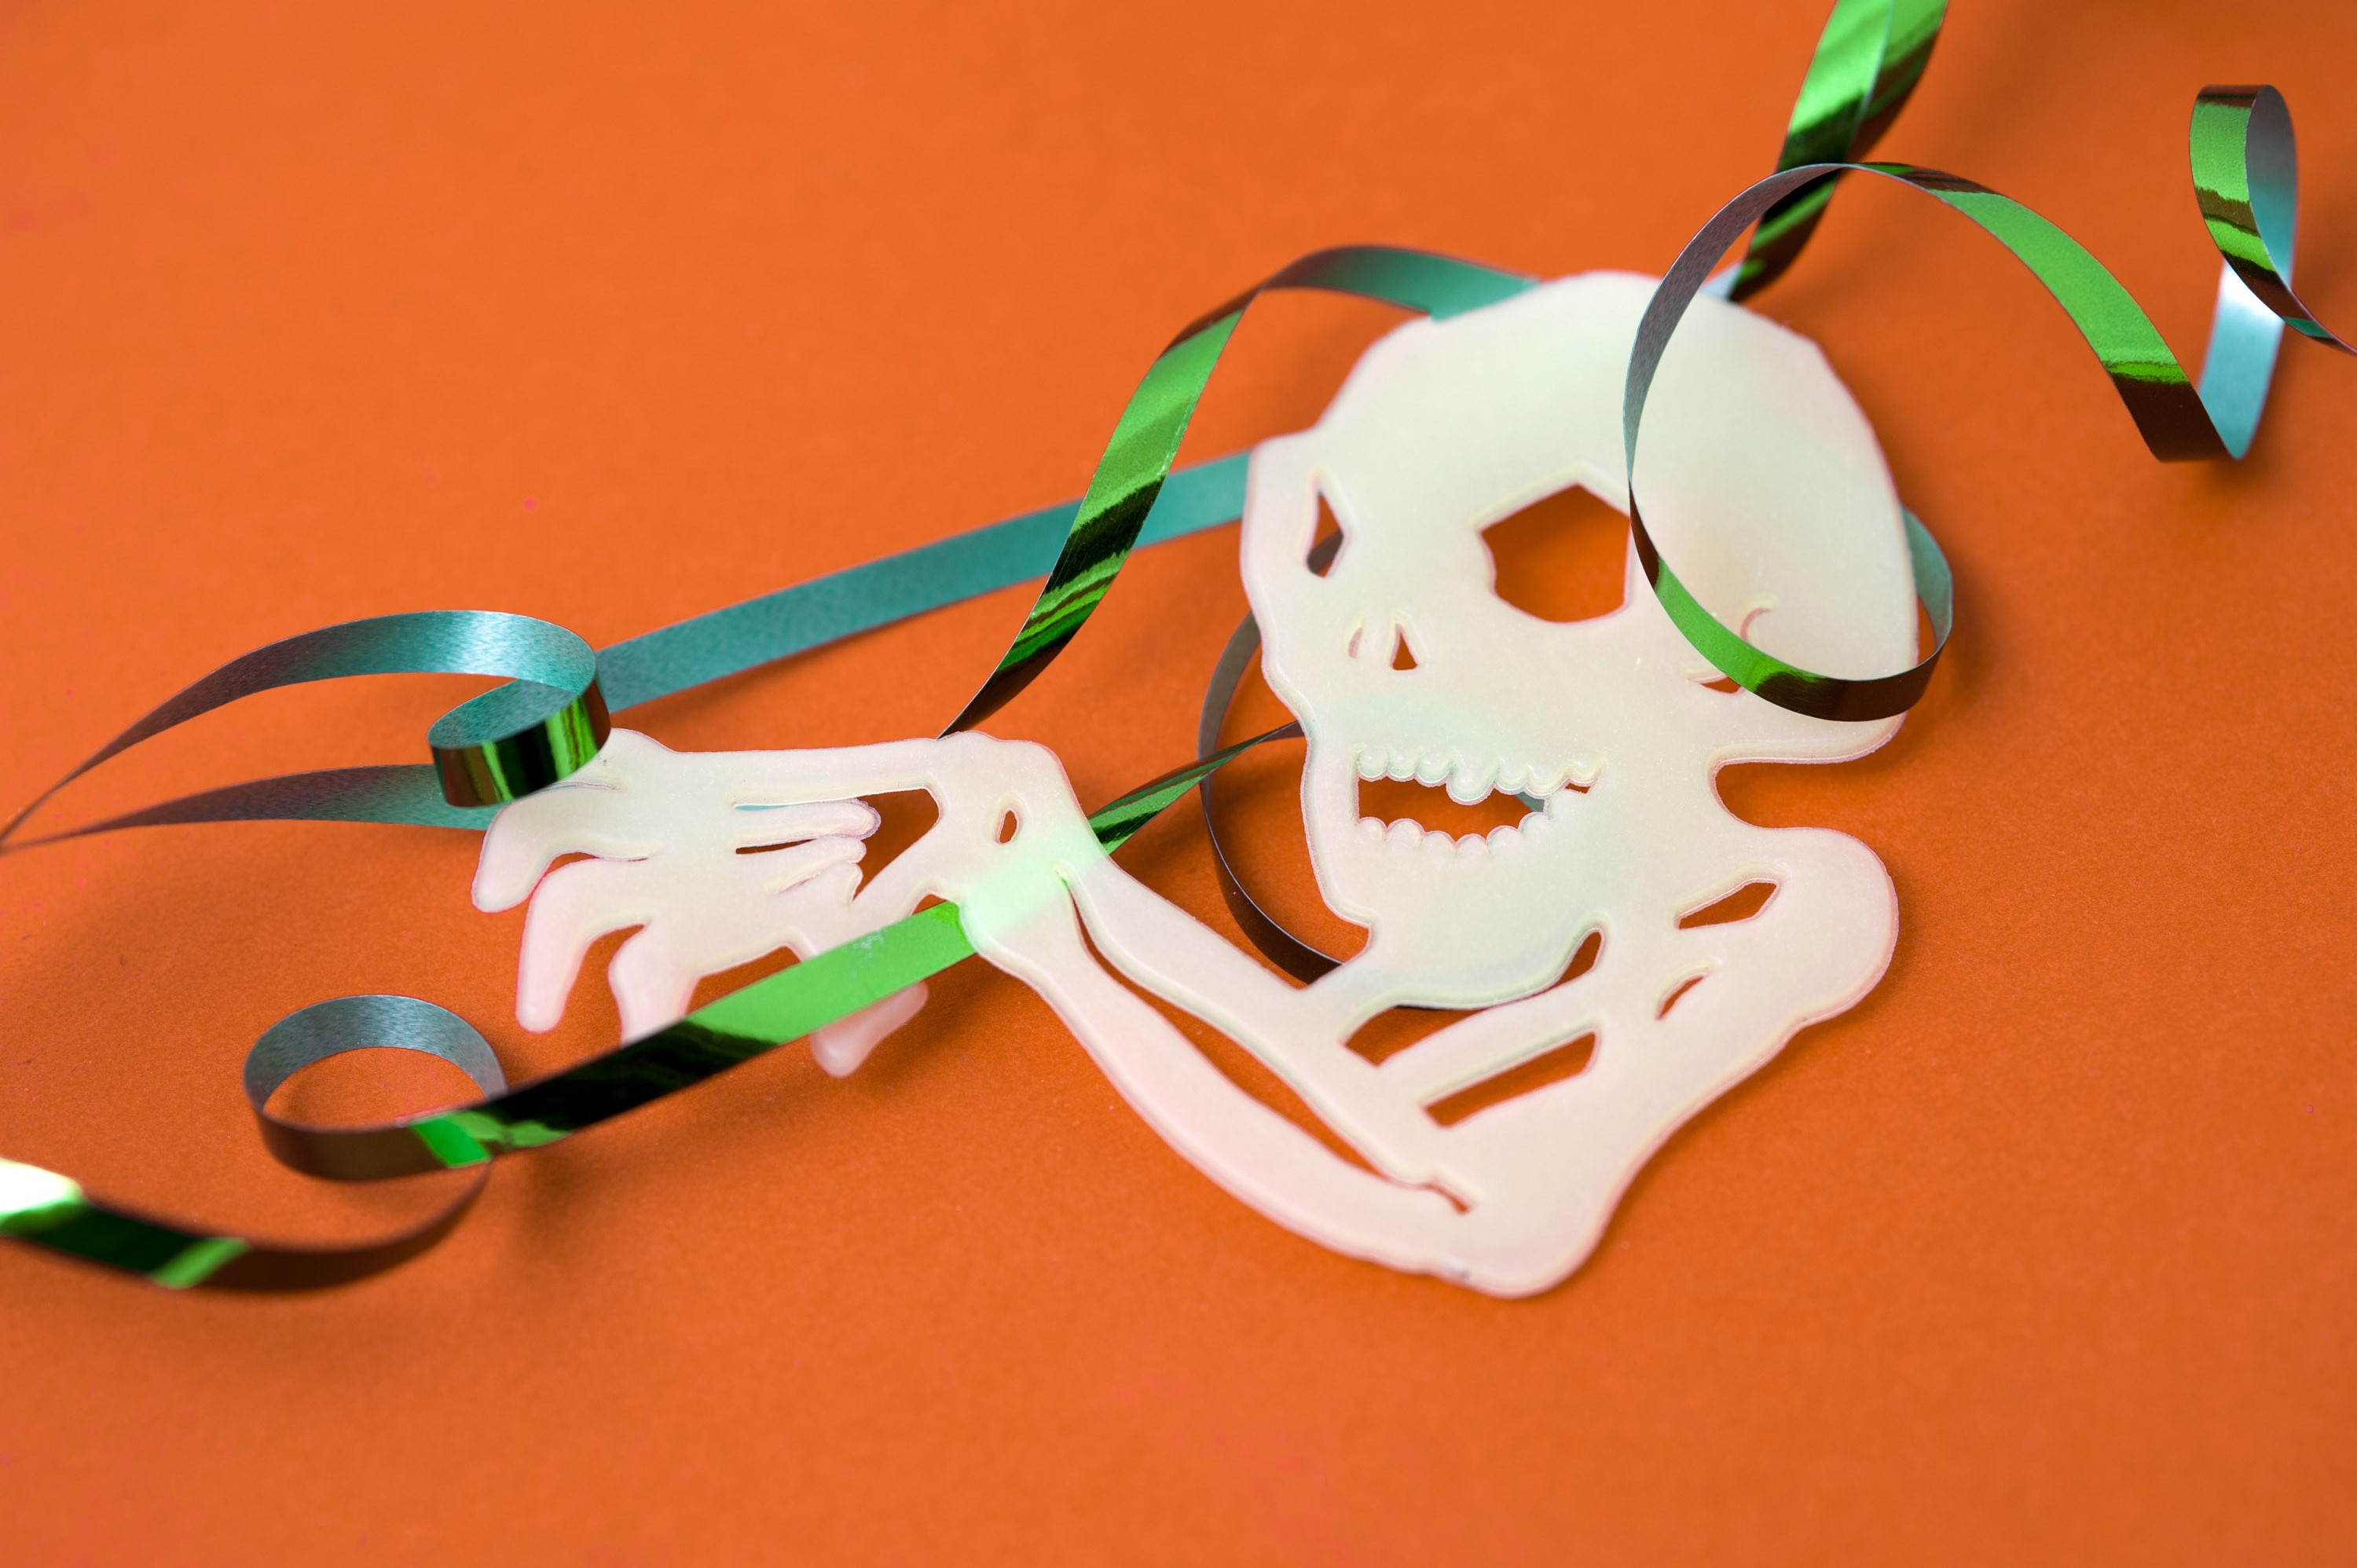 Spooking skeleton Halloween decoration with a skull and groping arm bones attached to a colourful party streamer to celebrate the holiday festival